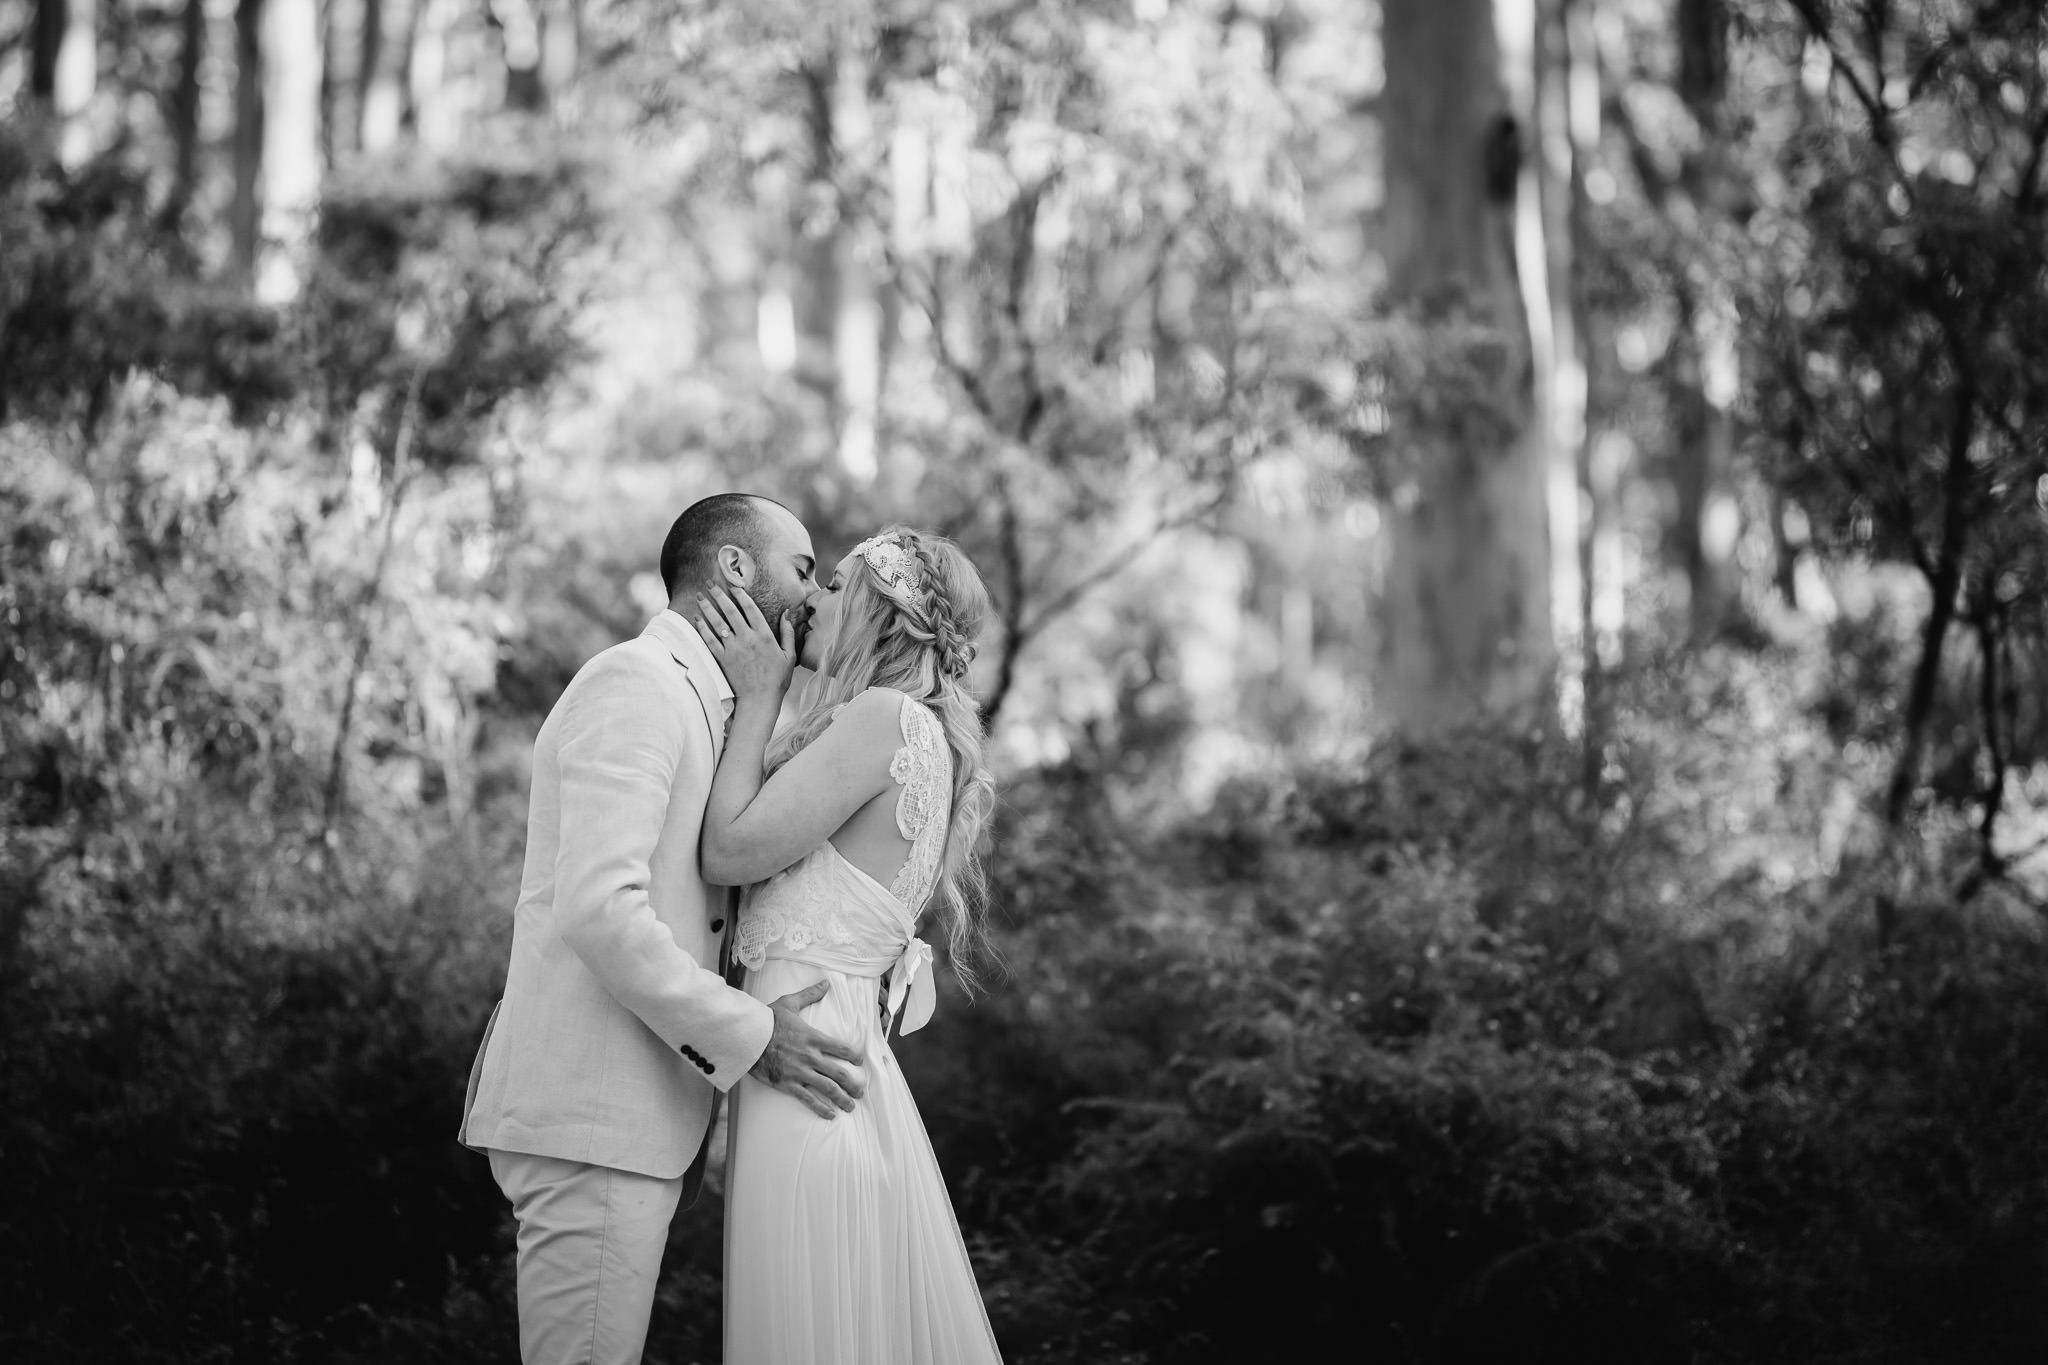 Bride and groom first kiss at forest wedding in Boranup